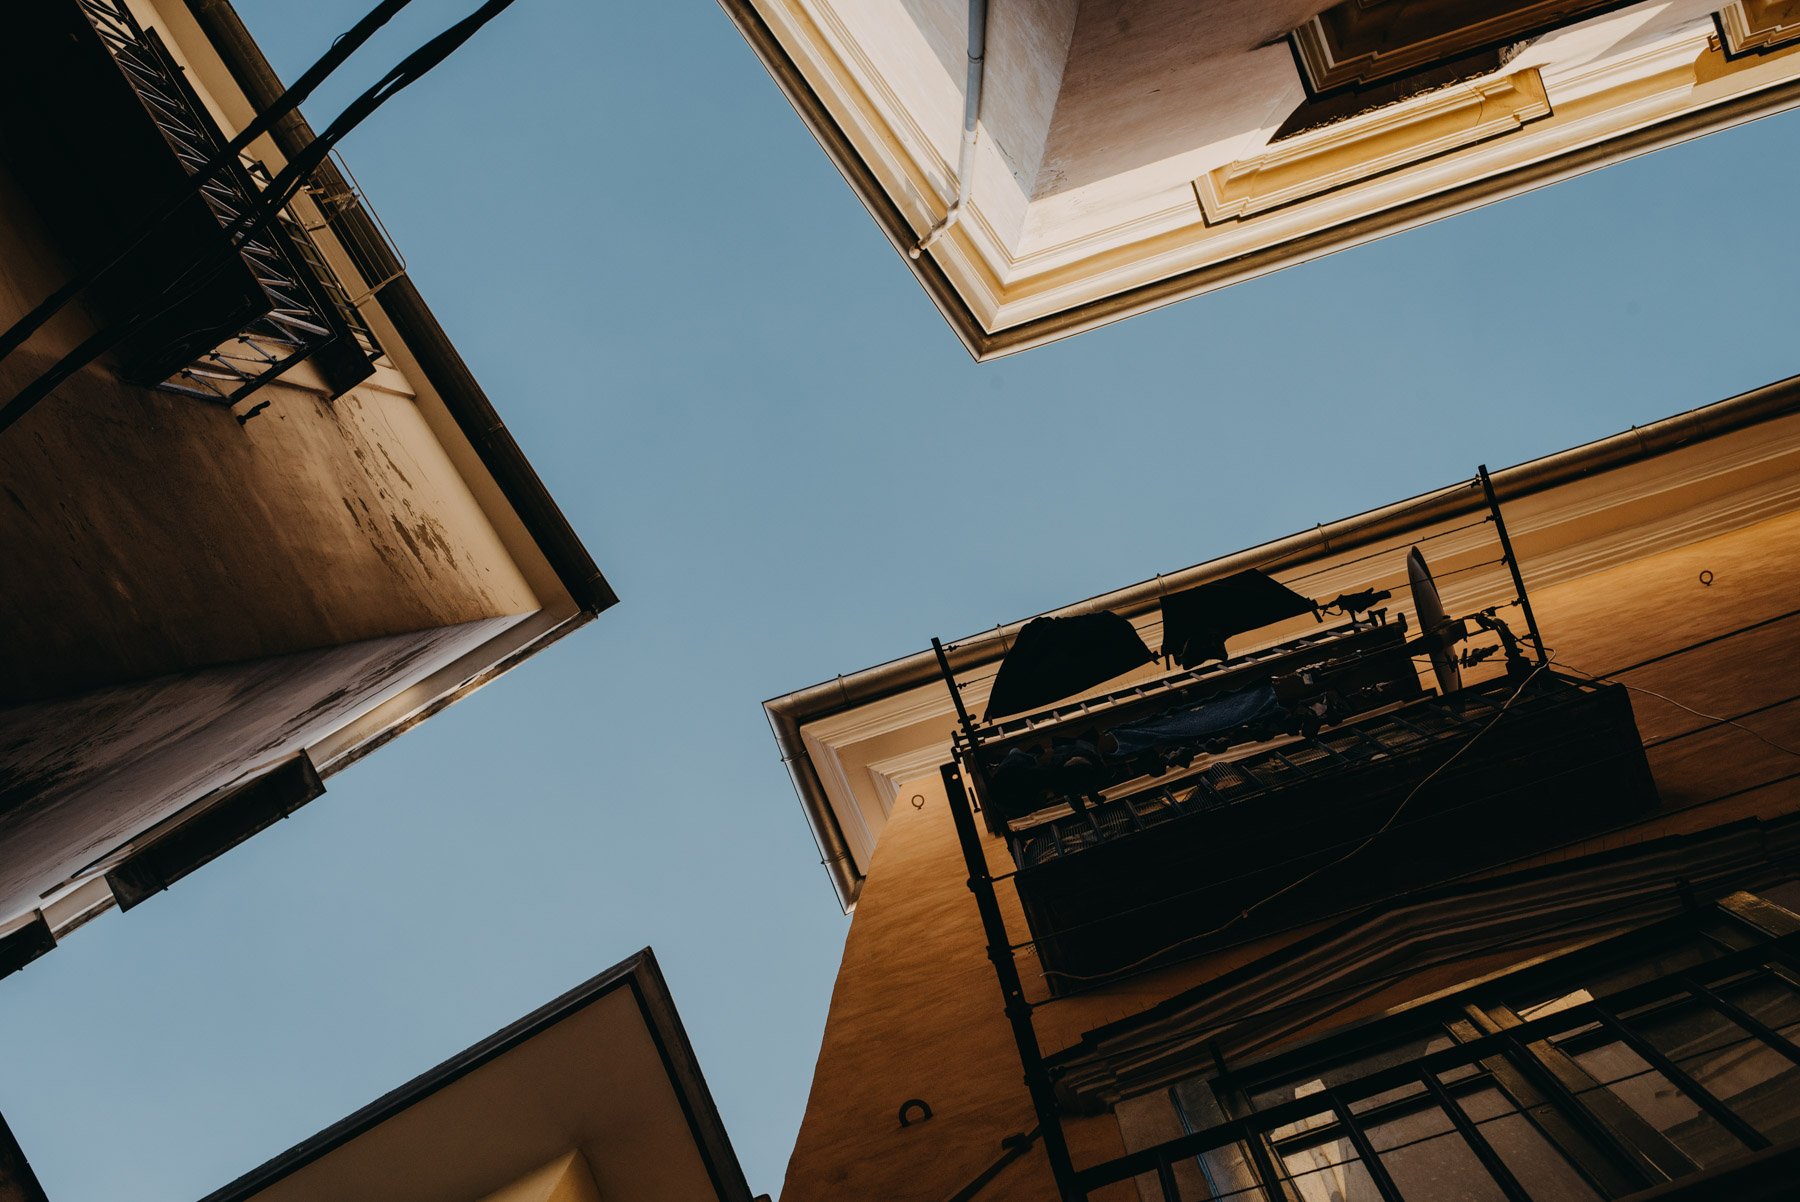 street photography in the city of Salerno, pictured the buildings seen from below